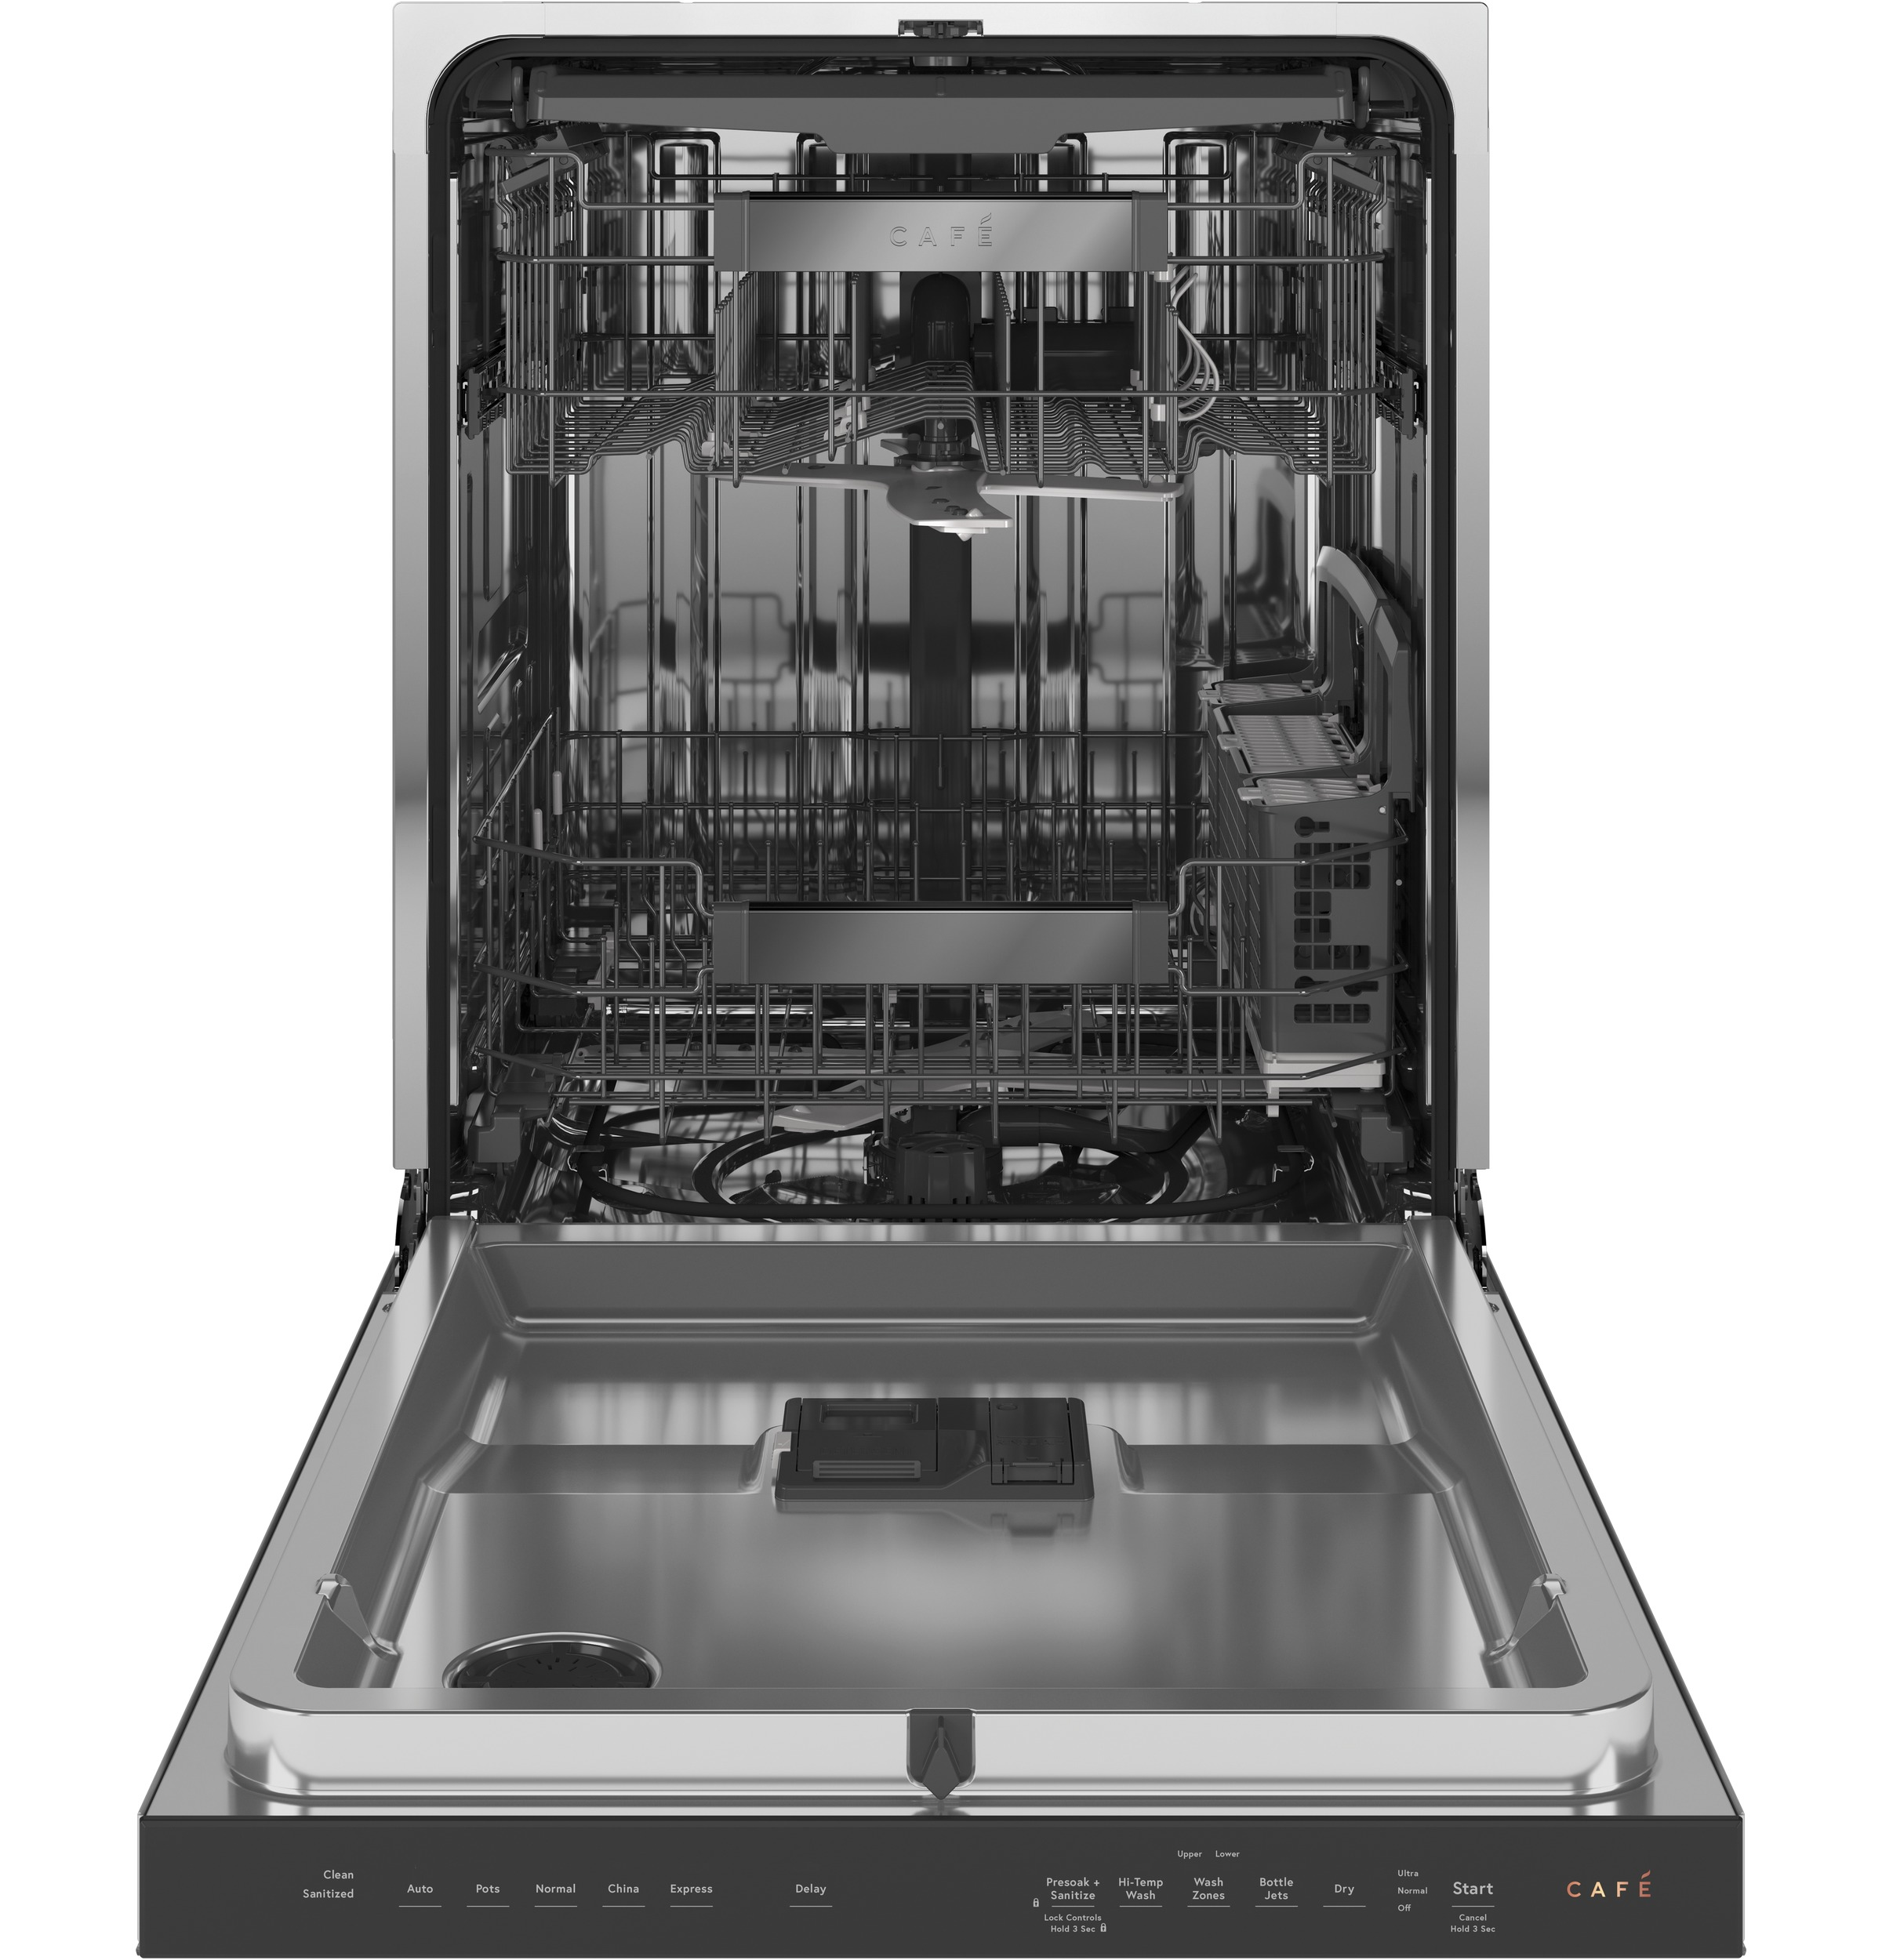 Model: CDT845M5NS5 | Cafe Café™ Stainless Interior Built-In Dishwasher with Hidden Controls in Platinum Glass